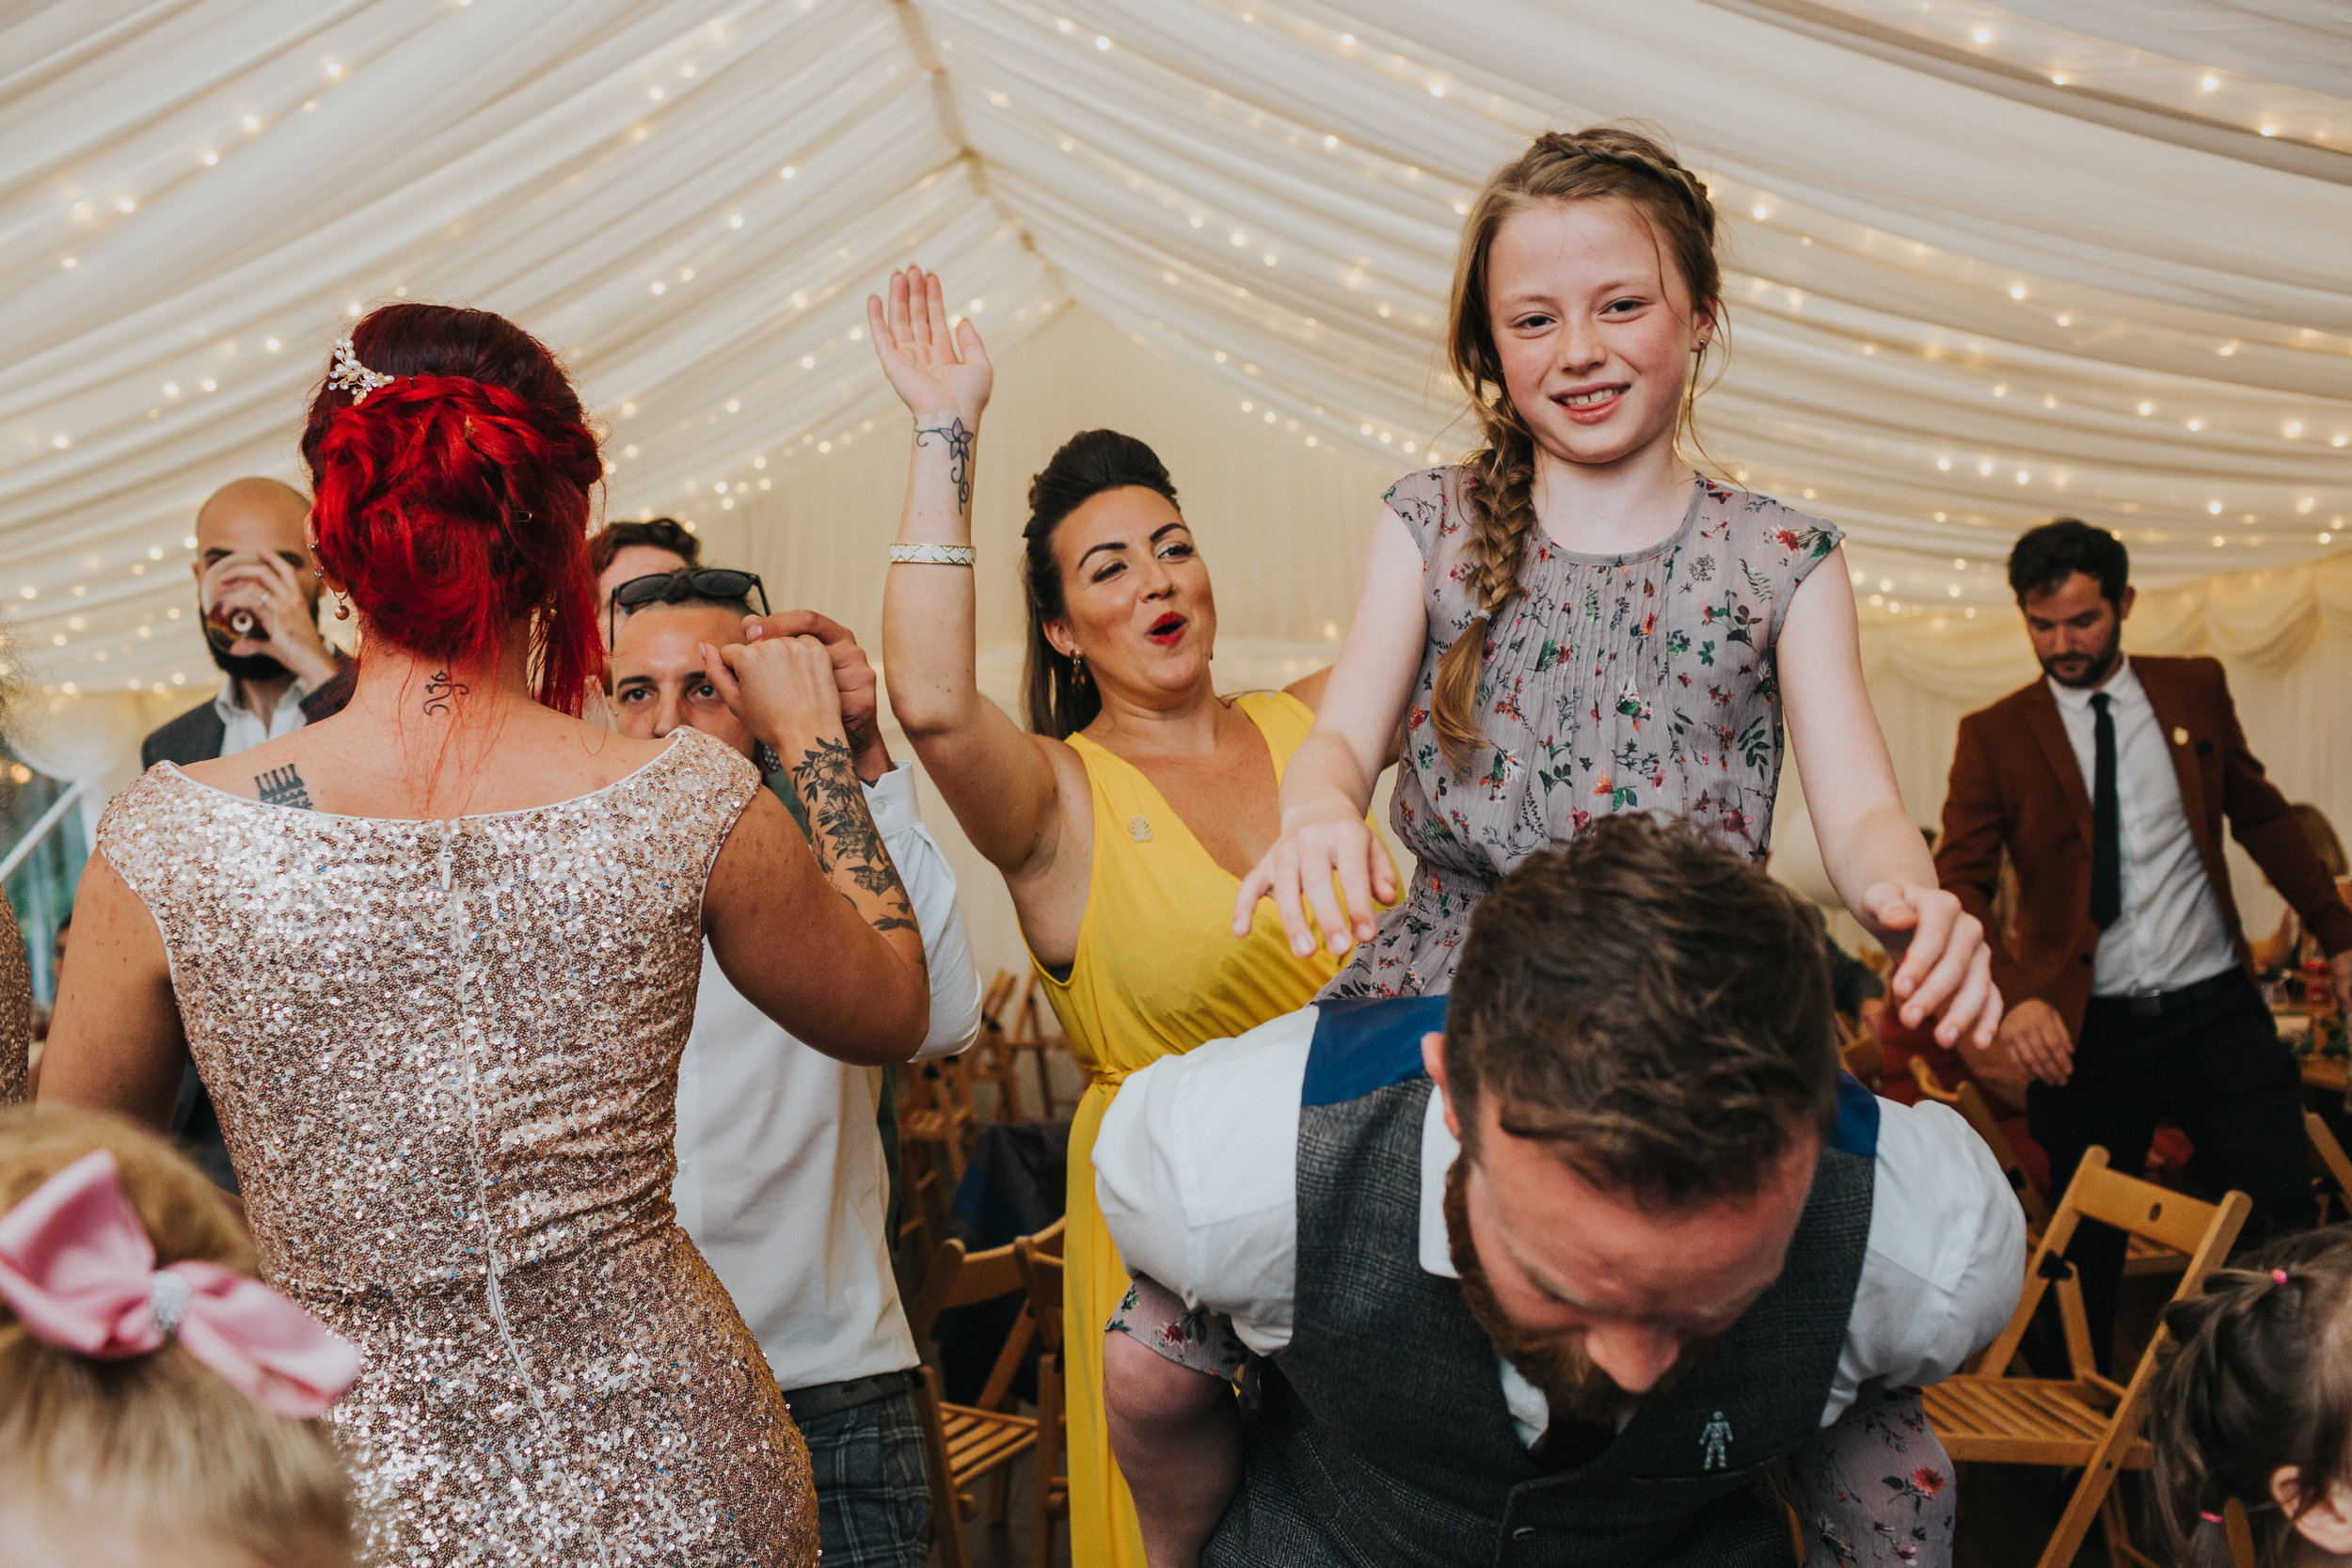 A wedding guest gives a little girl a piggy back as another wedding guest dances behind them.